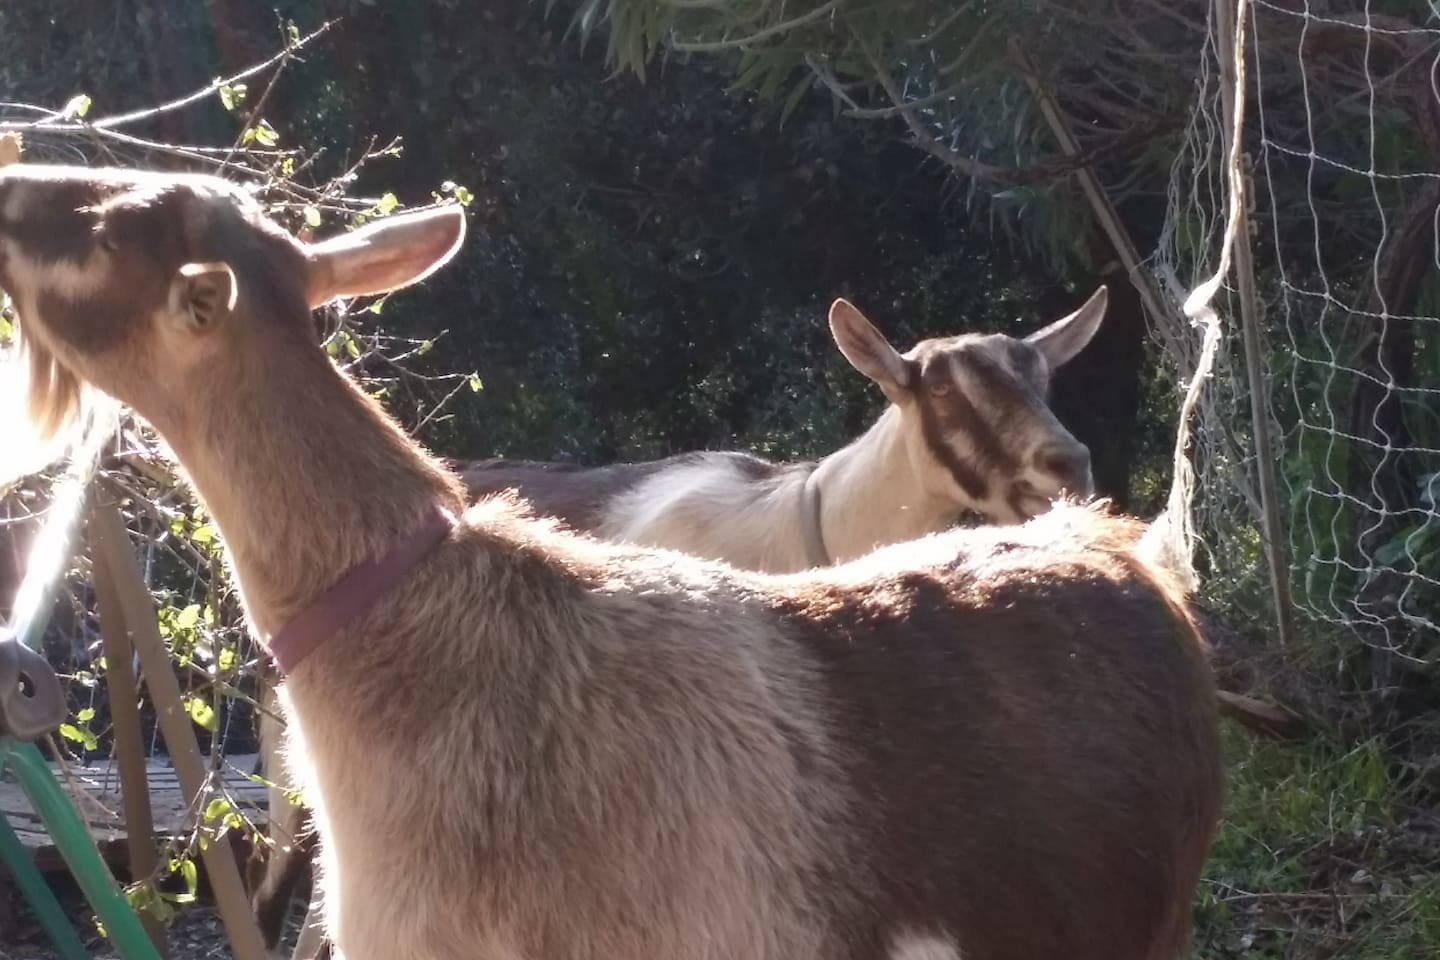 Two of our 3 goats. Sorry - they aren't producing milk anymore.